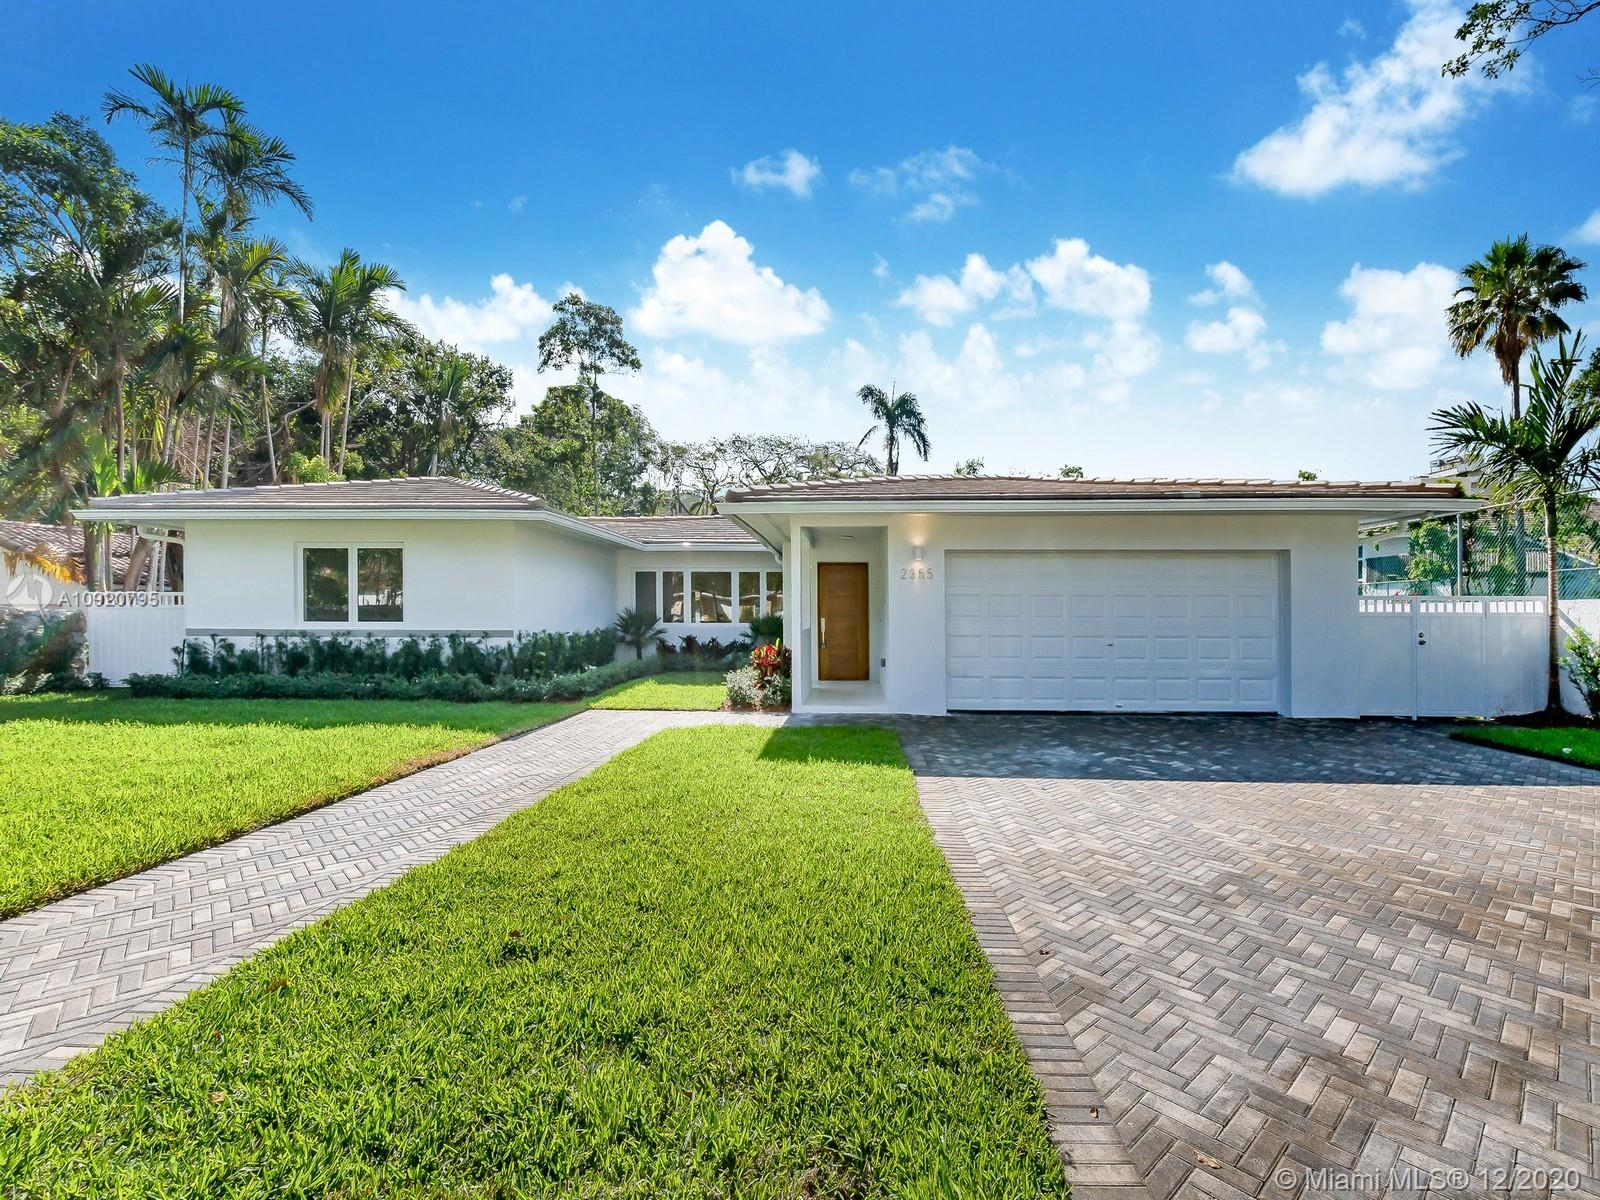 Located on the historic and luxurious South Miami Avenue, this flawless Mid-Century Modern home has been completely renovated with contemporary upgrades, while still preserving its original charm. Wood-beam ceilings in the family room; an open flowing layout with plenty of natural light, a new kitchen with custom cabinets, quartz countertops, and stainless-steel appliances; and a spacious covered outdoor patio are just a few of the features that make this 4 bedroom/4 bathroom home a rare find. At nearly 3,500 sf under AC, on a 12,750 lot with large manicured yard that would easily fit a pool, this is an ideal home for a family wishing to be in the heart of Miami.  Walk or bike to Brickell, downtown, or Key Biscayne, and  enjoy the atmosphere of one of Miami's first and finest neighborhoods